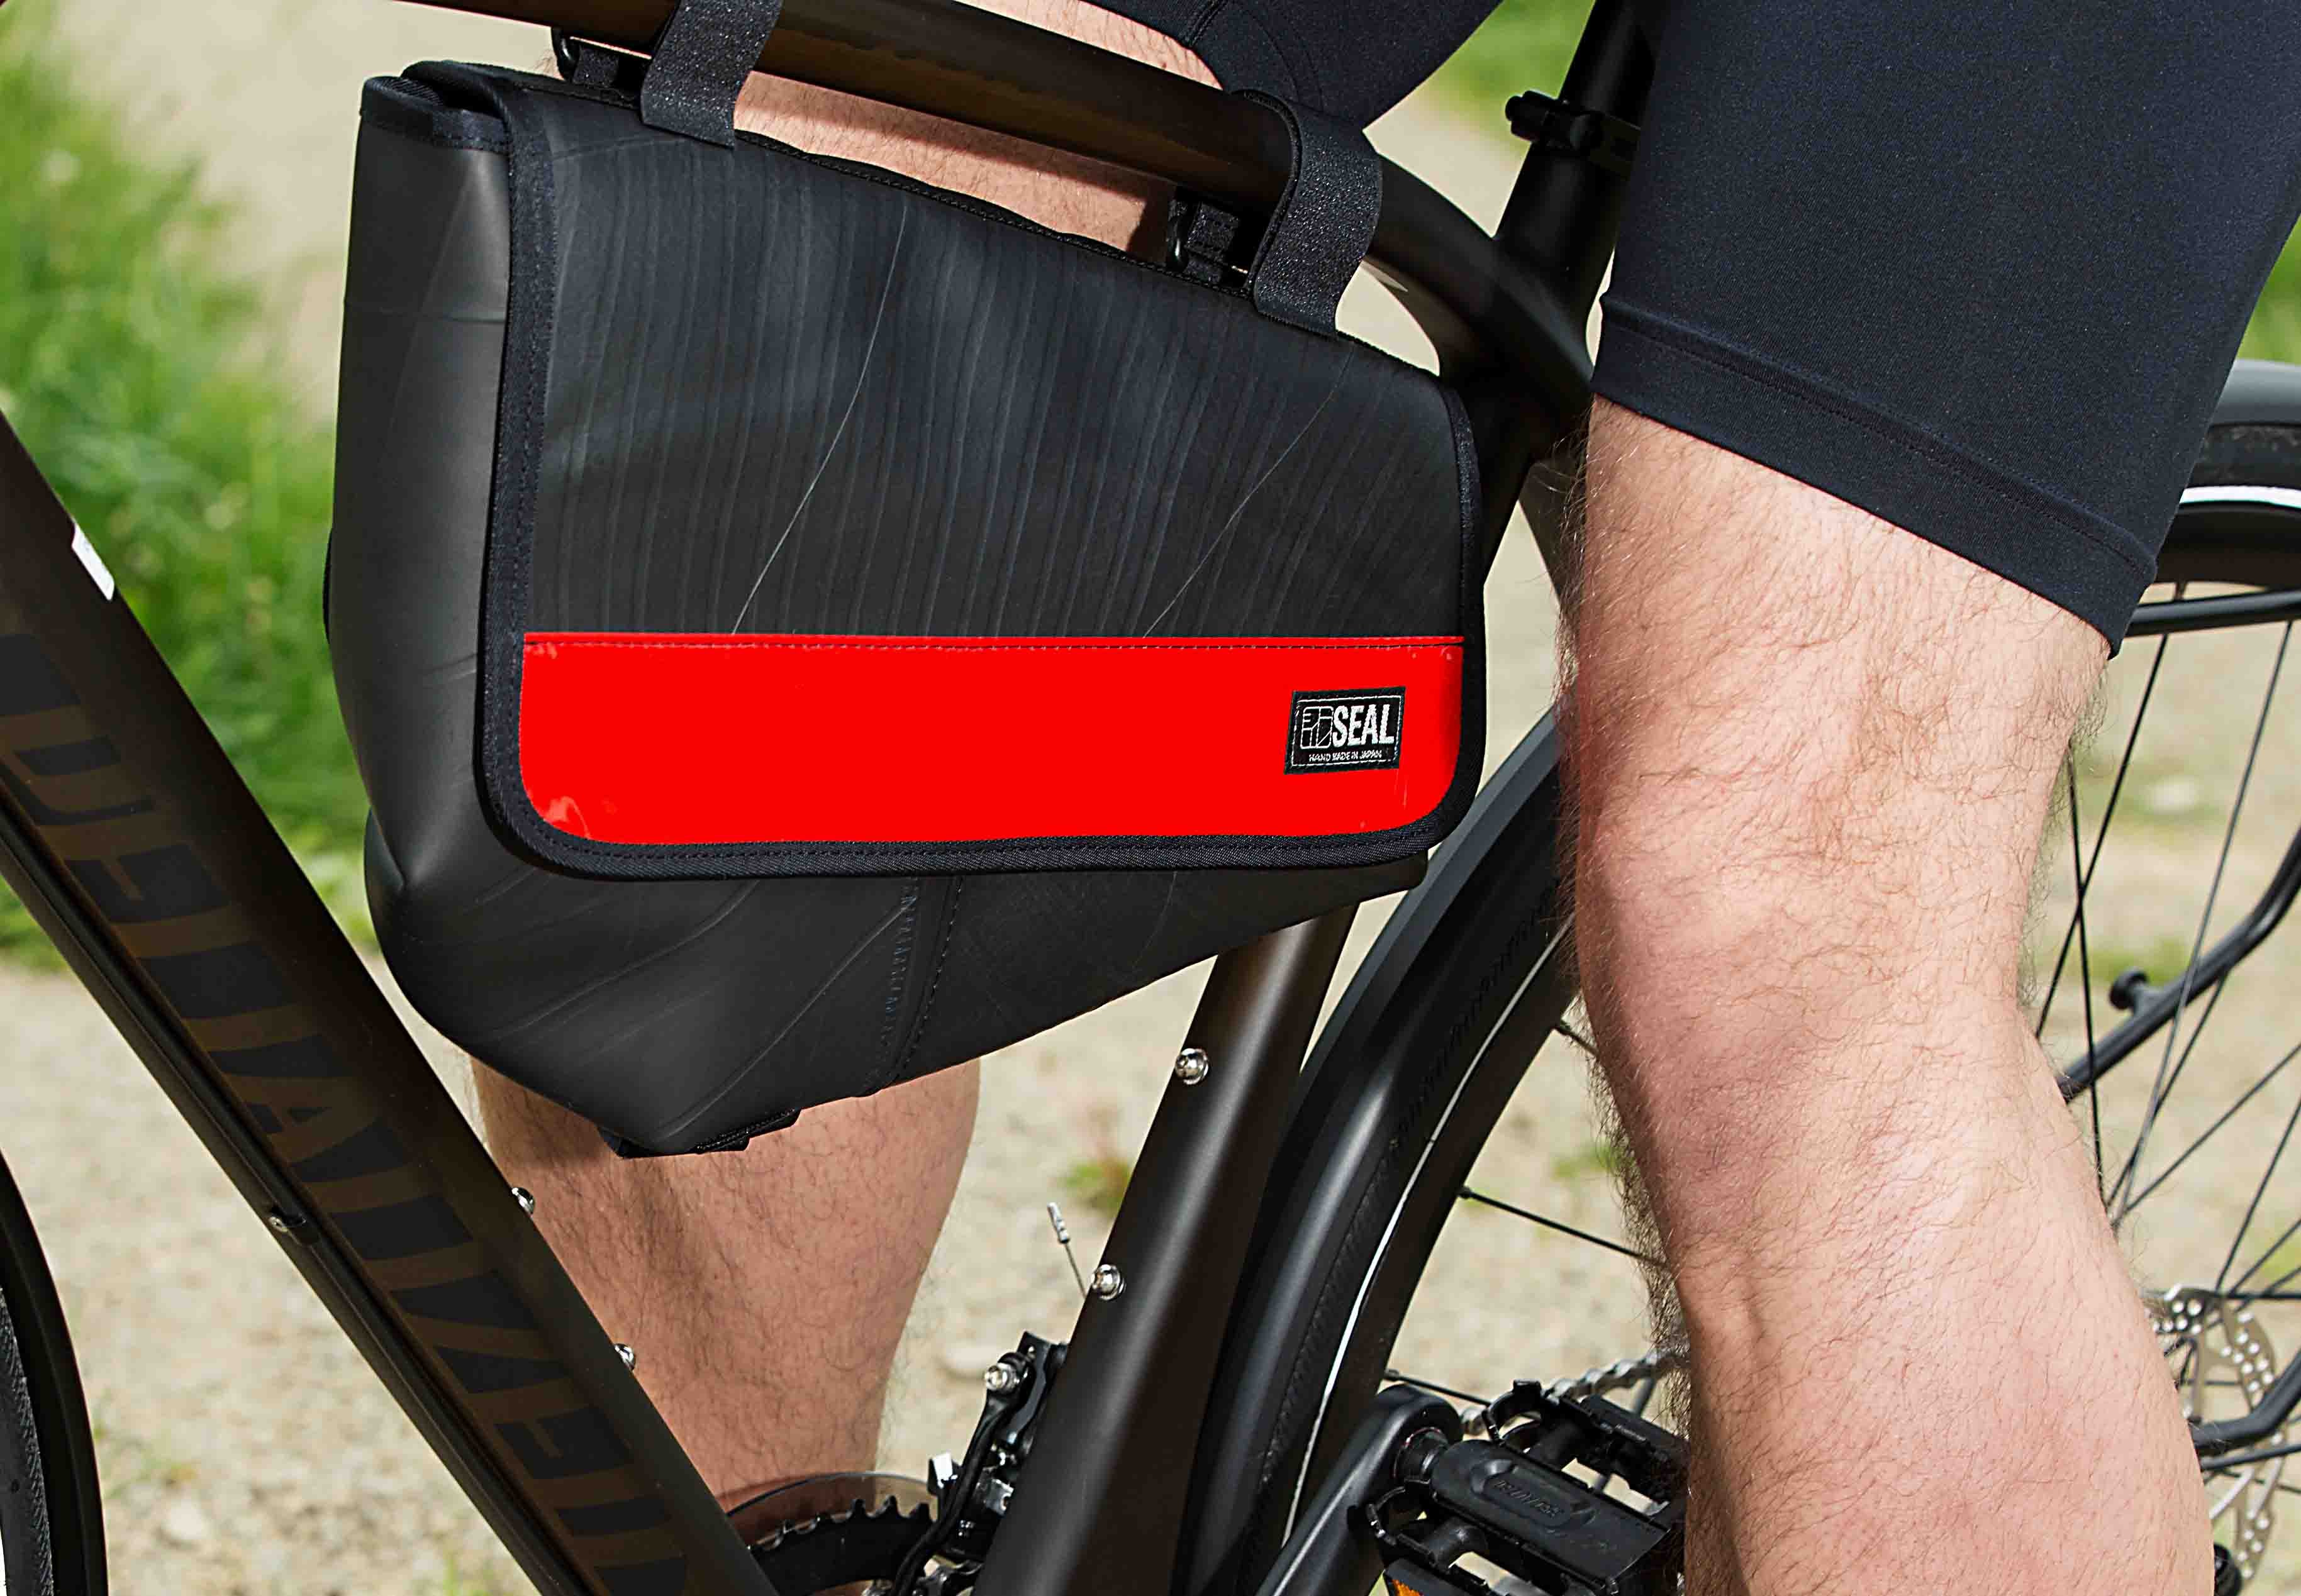 SEAL Recycled Tire tube bicycle bag